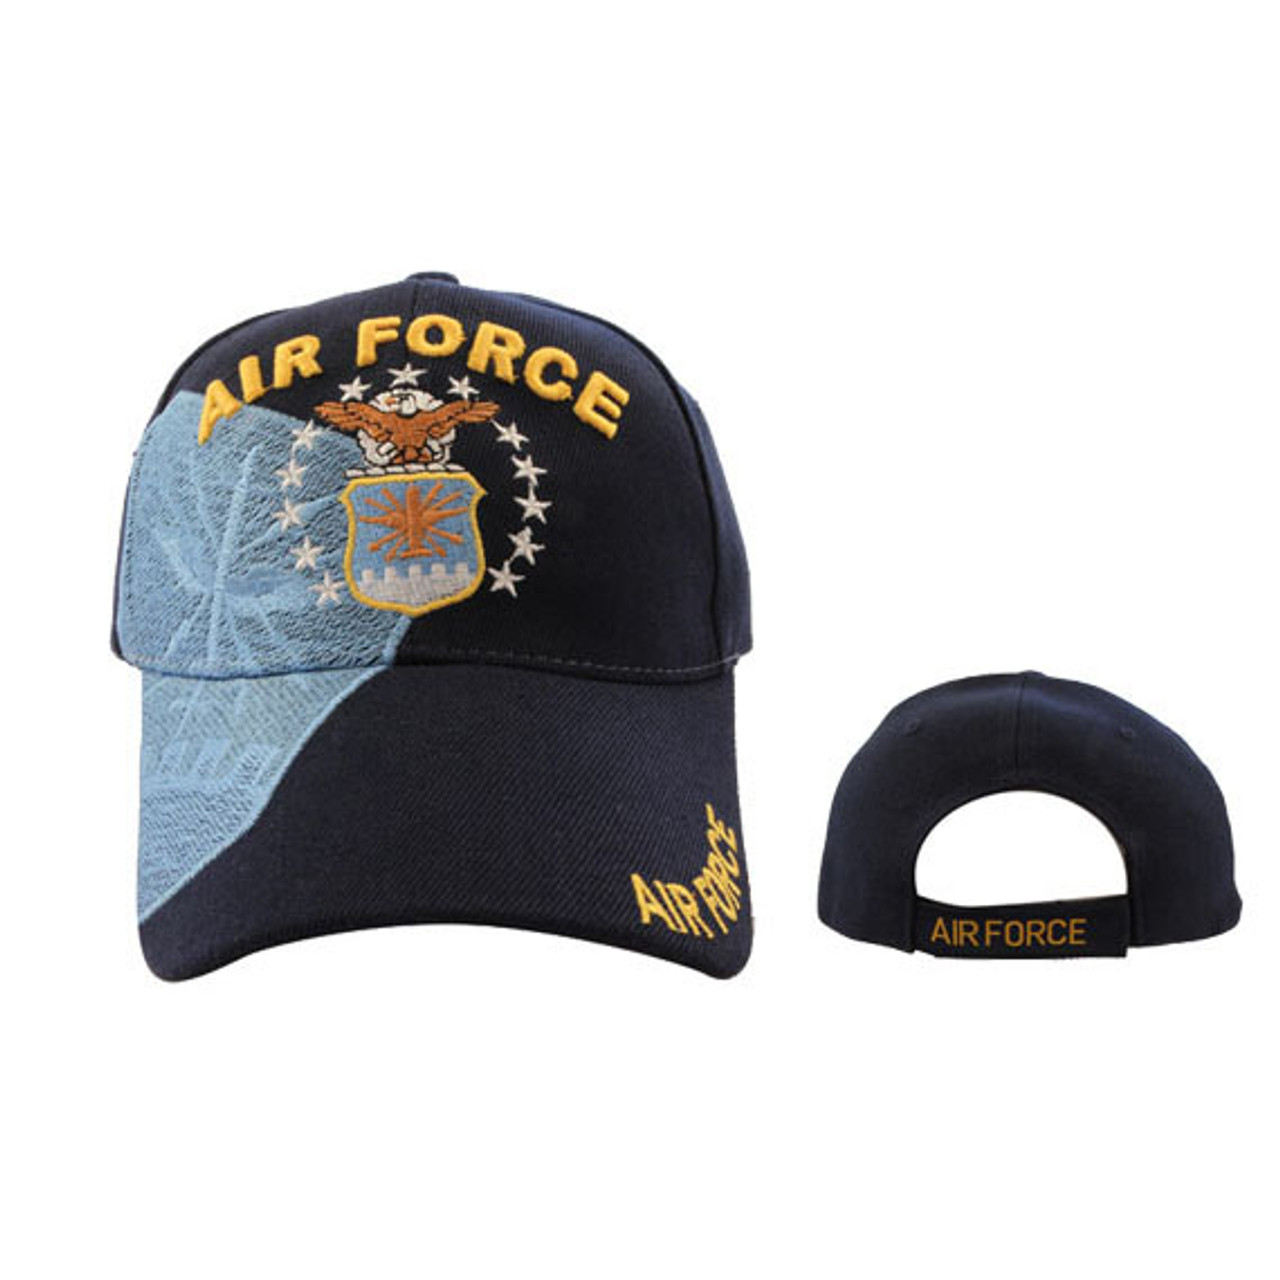 Air Force Baseball Cap Wholesale-Black